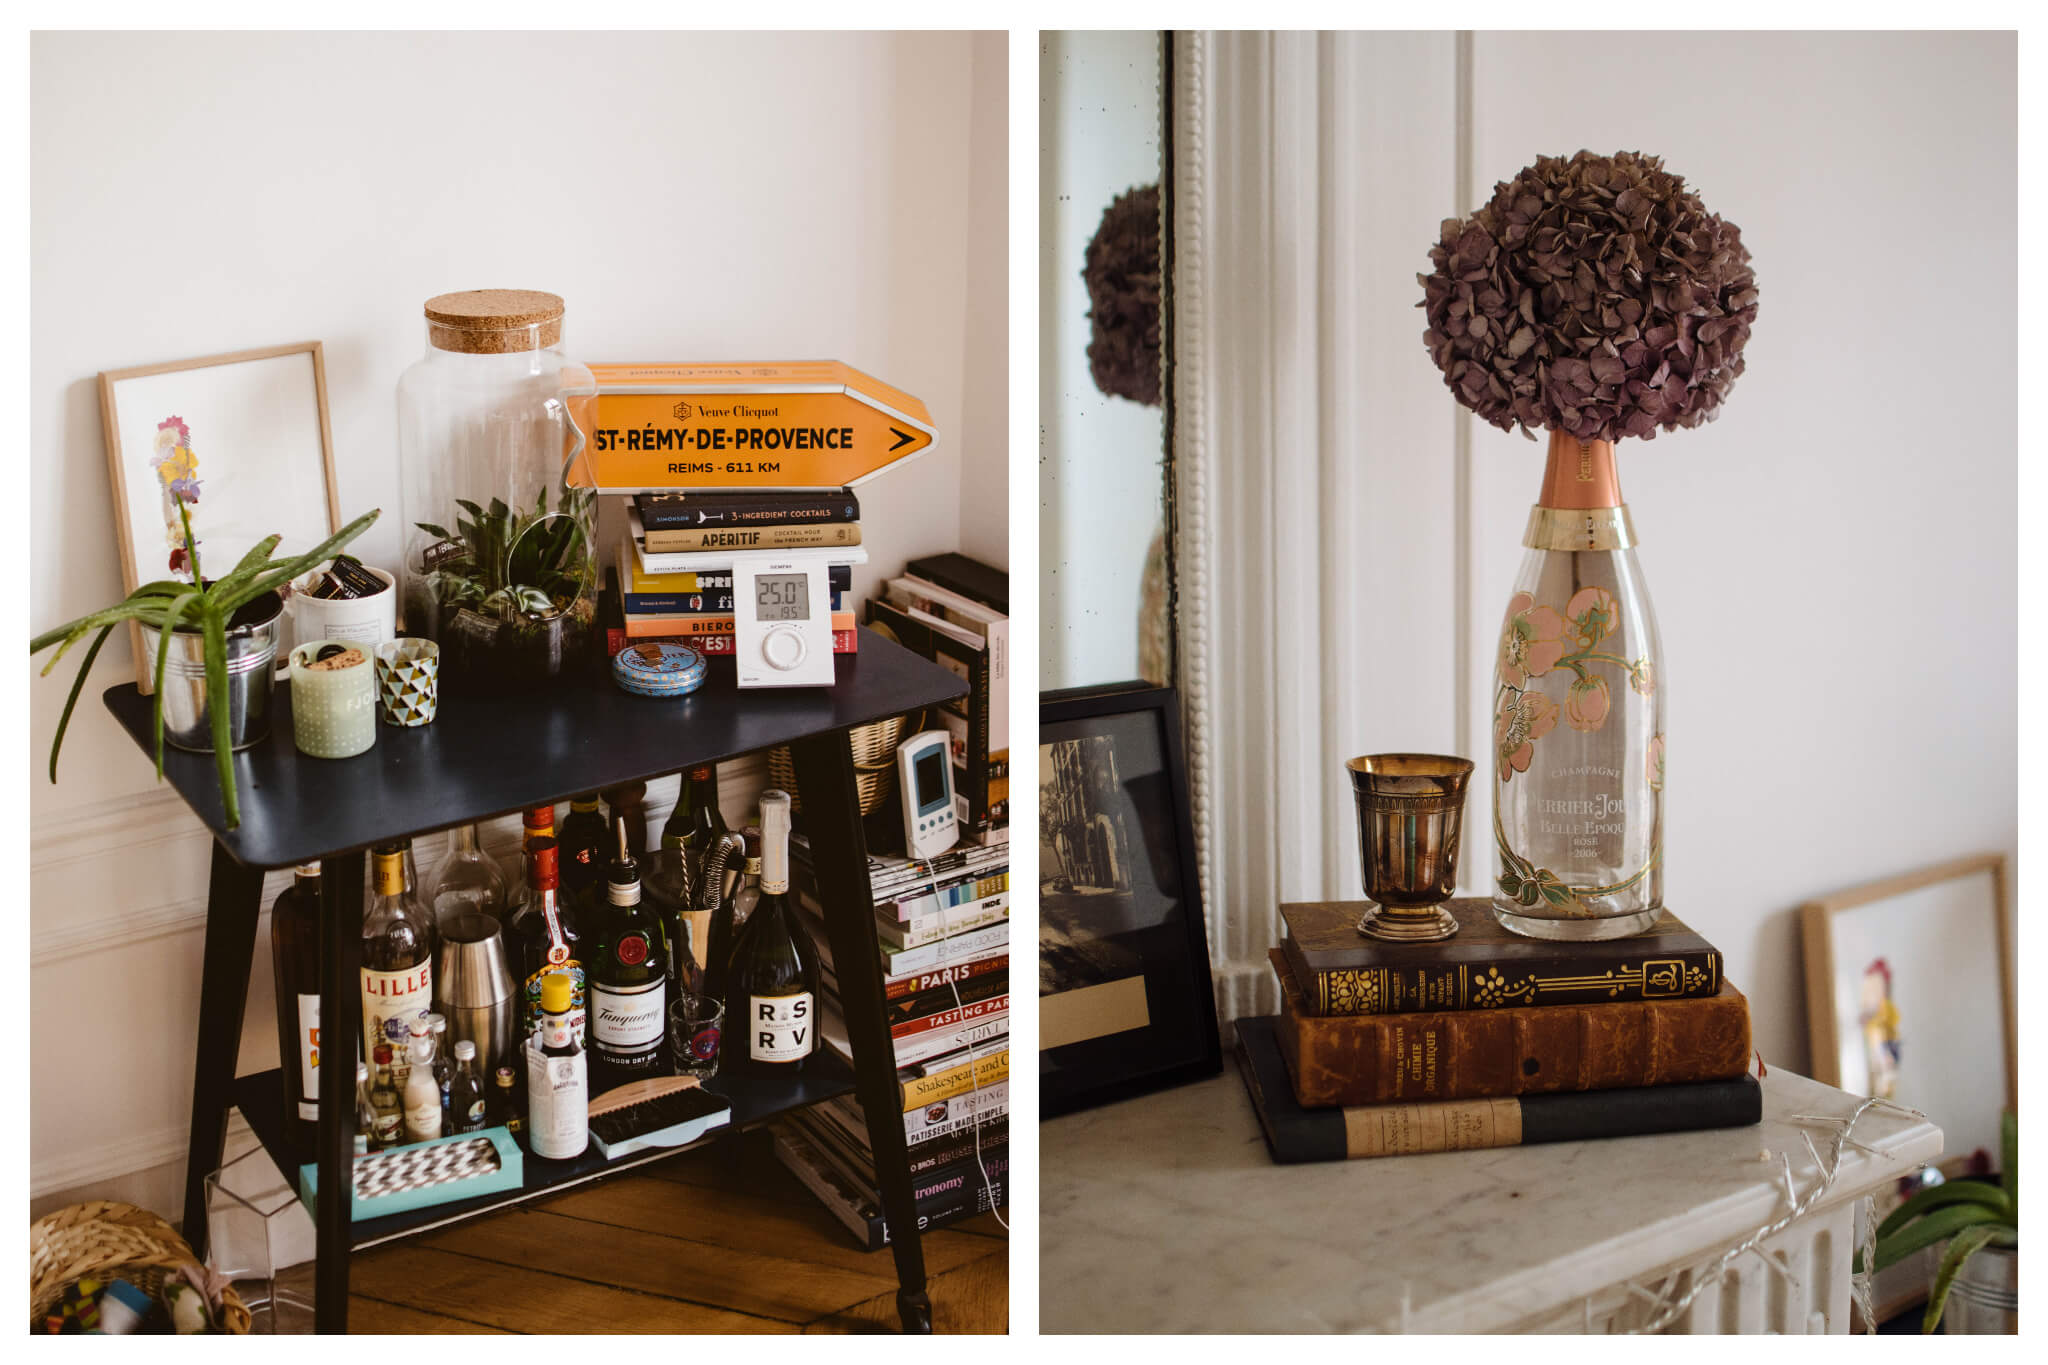 Left: Assorted items are seen on, under and next to a black shelf in an apartment, including a stack of books and bottles of alcohol, Right: Assorted items sit next to a mirror atop a fireplace in an apartment, including a stack of books and a vase of flowers made from an old champagne bottle.